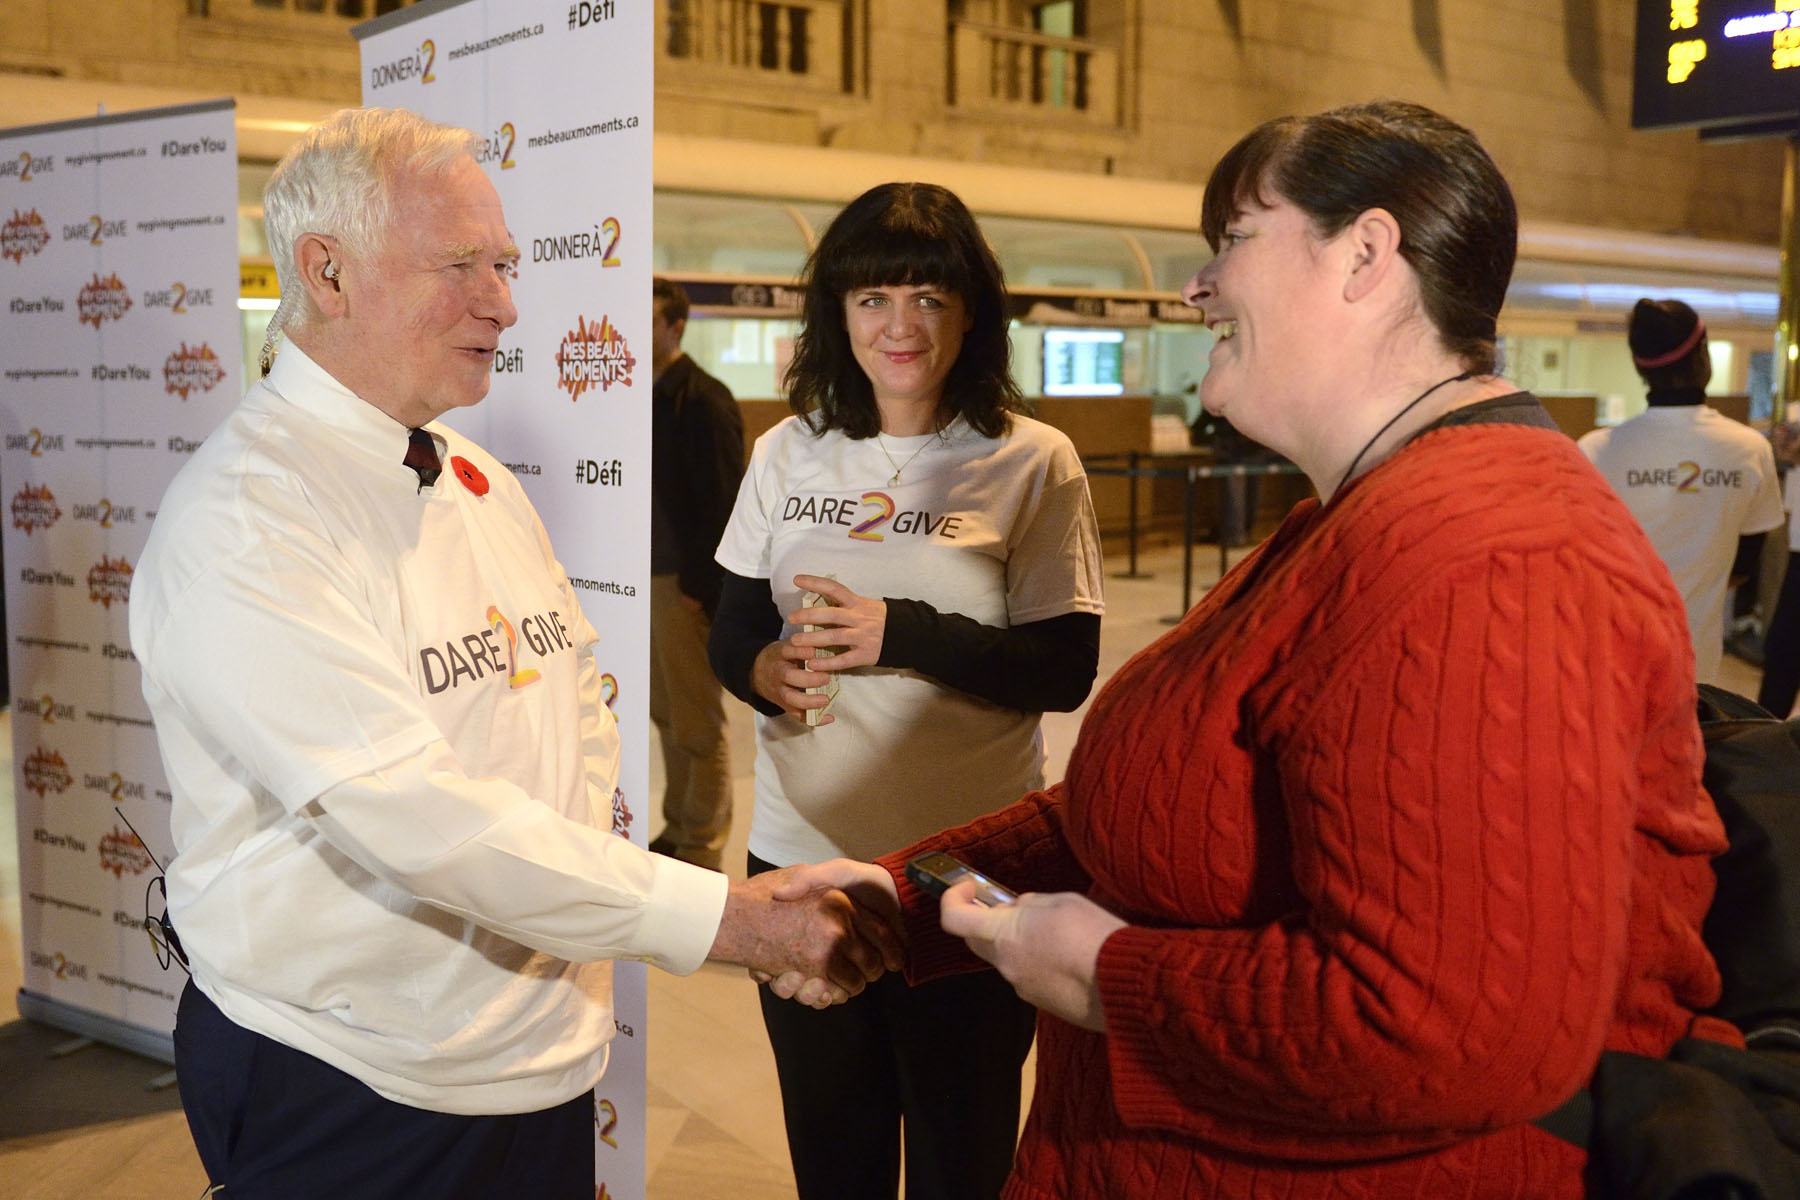 The Governor General engaged with commuters and asked them to commit to a giving moment, and to dare their friends and families to give with them.